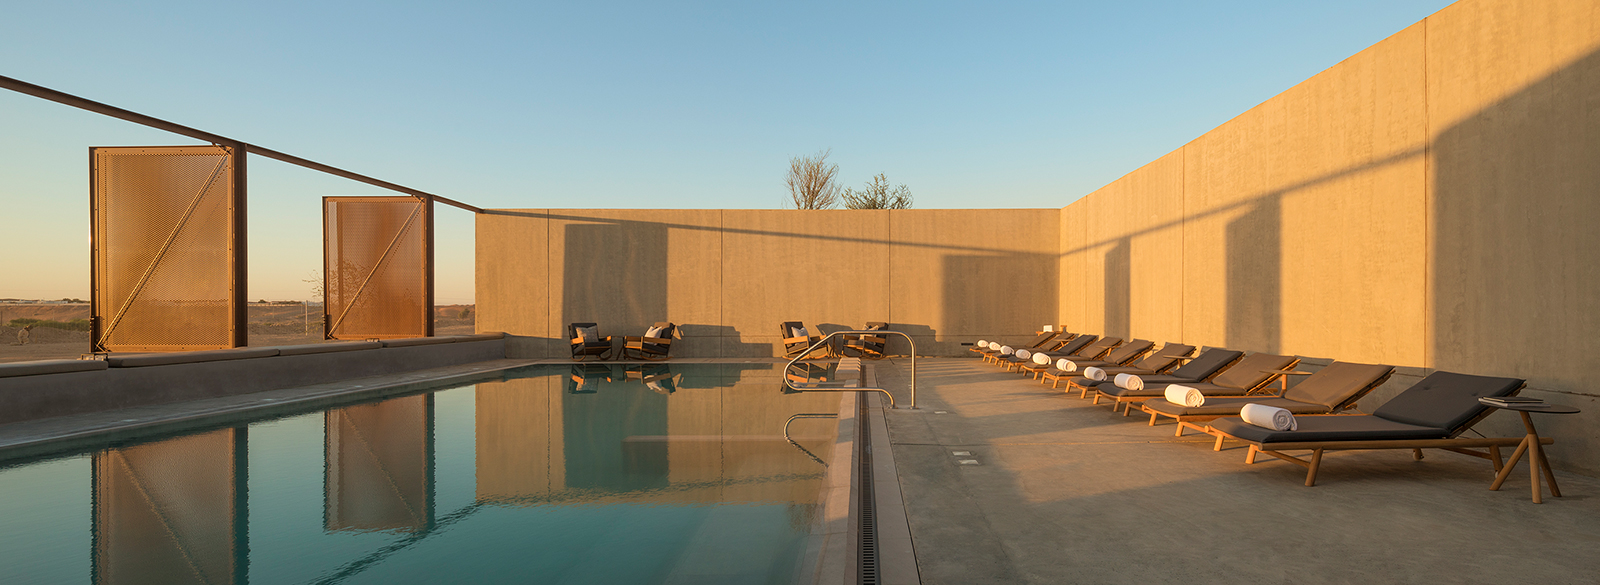 Al Faya Lodge and Spa in the United Arab Emirates